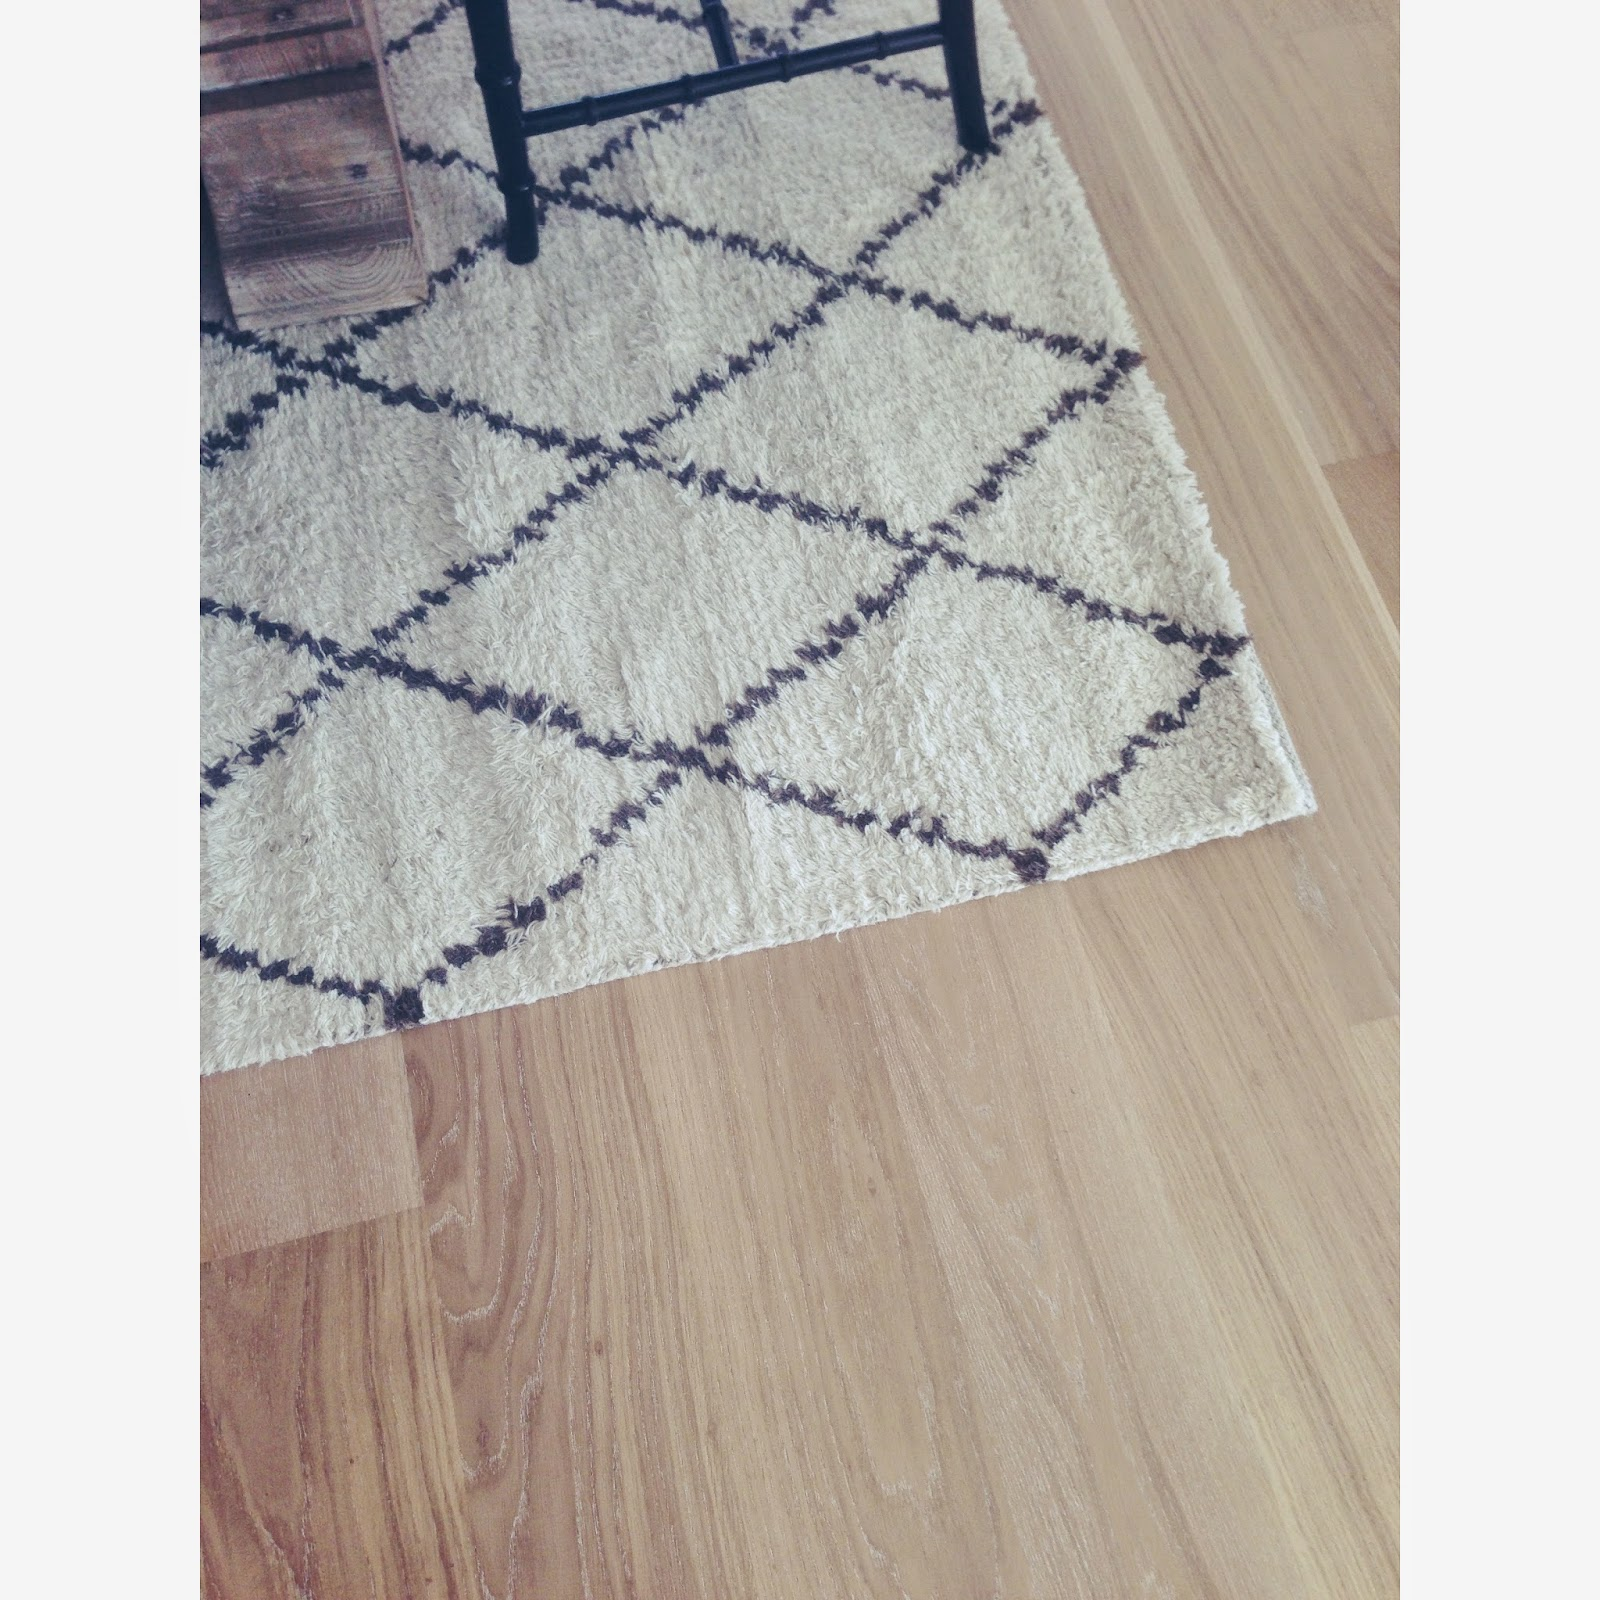 Picture Of The Marigold Rug Is From Lovely Www Kararosenlund Com Home